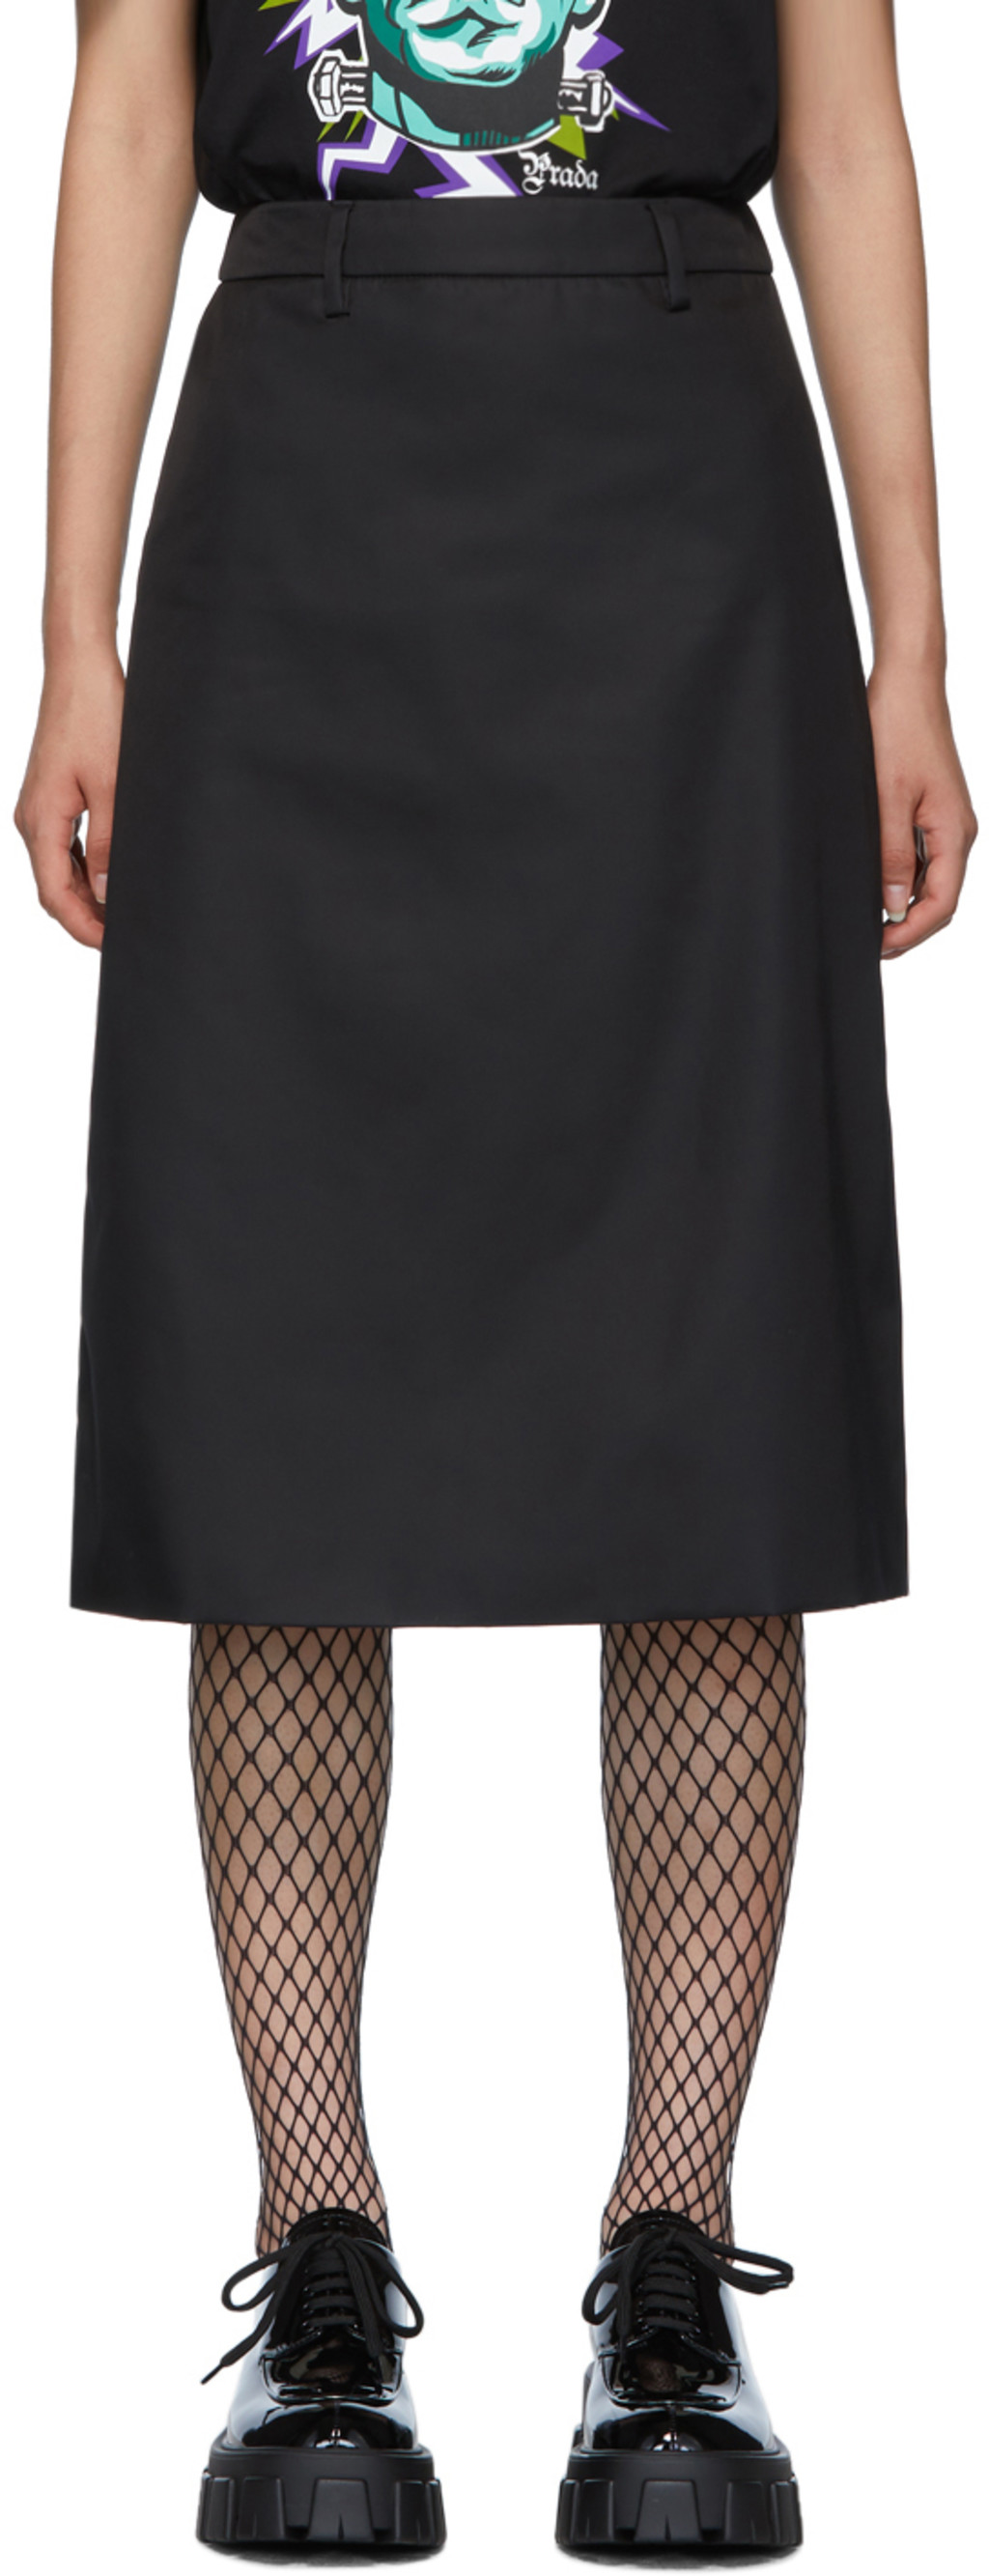 8375898d6 Designer skirts for Women | SSENSE